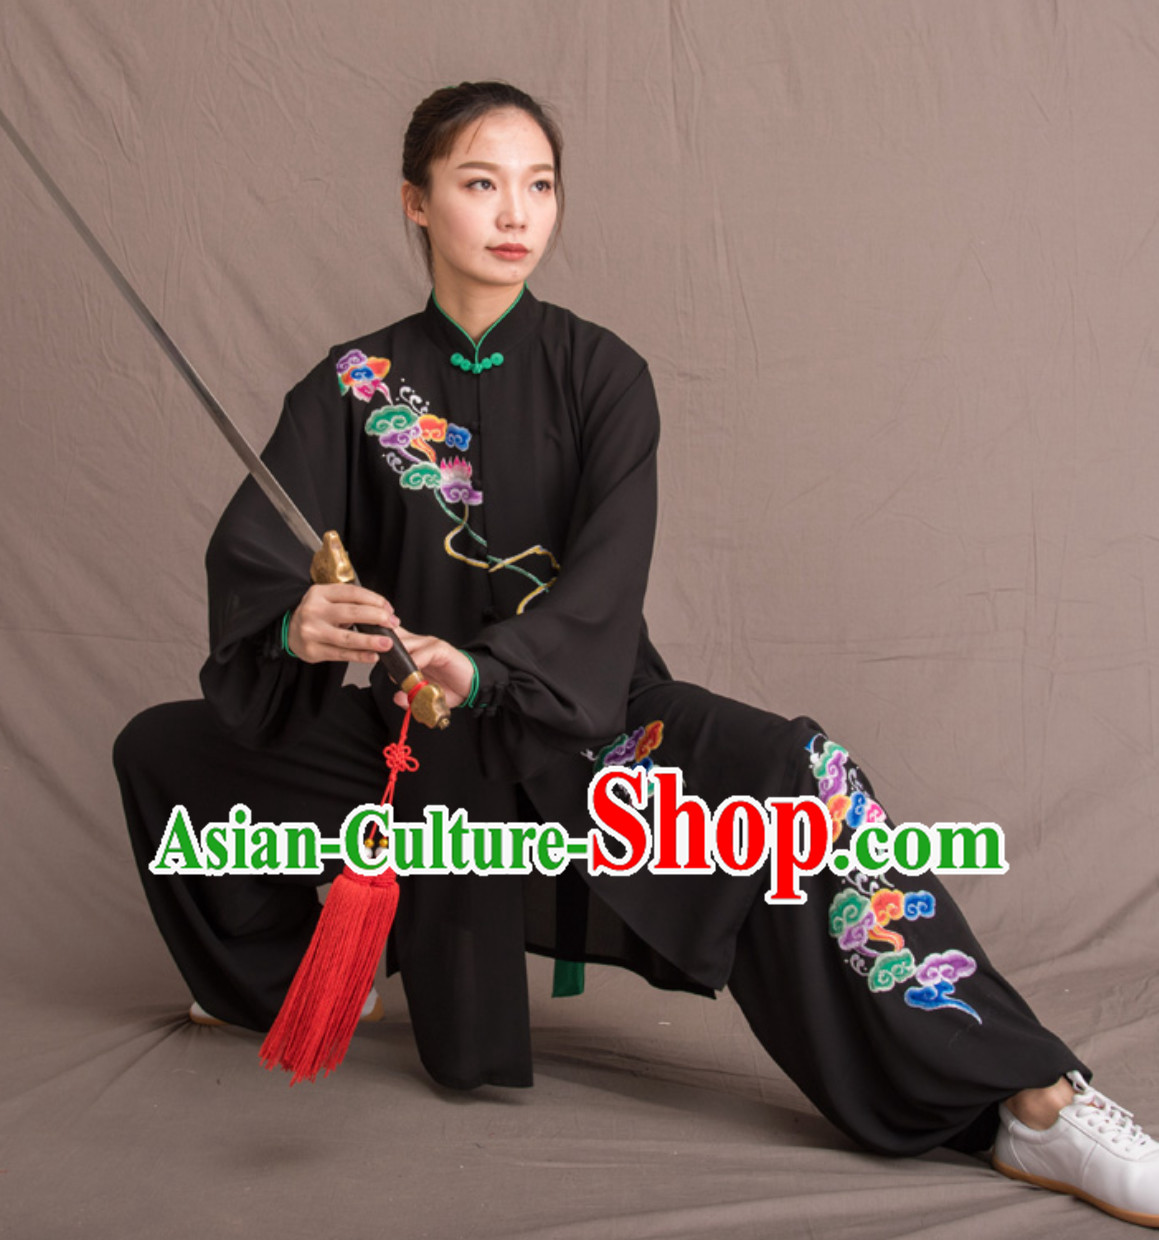 Black Top Chinese Classical Competition Championship Professional Tai Chi Uniforms Taiji Kung Fu Wing Chun Kungfu Tai Ji Sword Master Dress Clothing Suits Clothing Complete Set